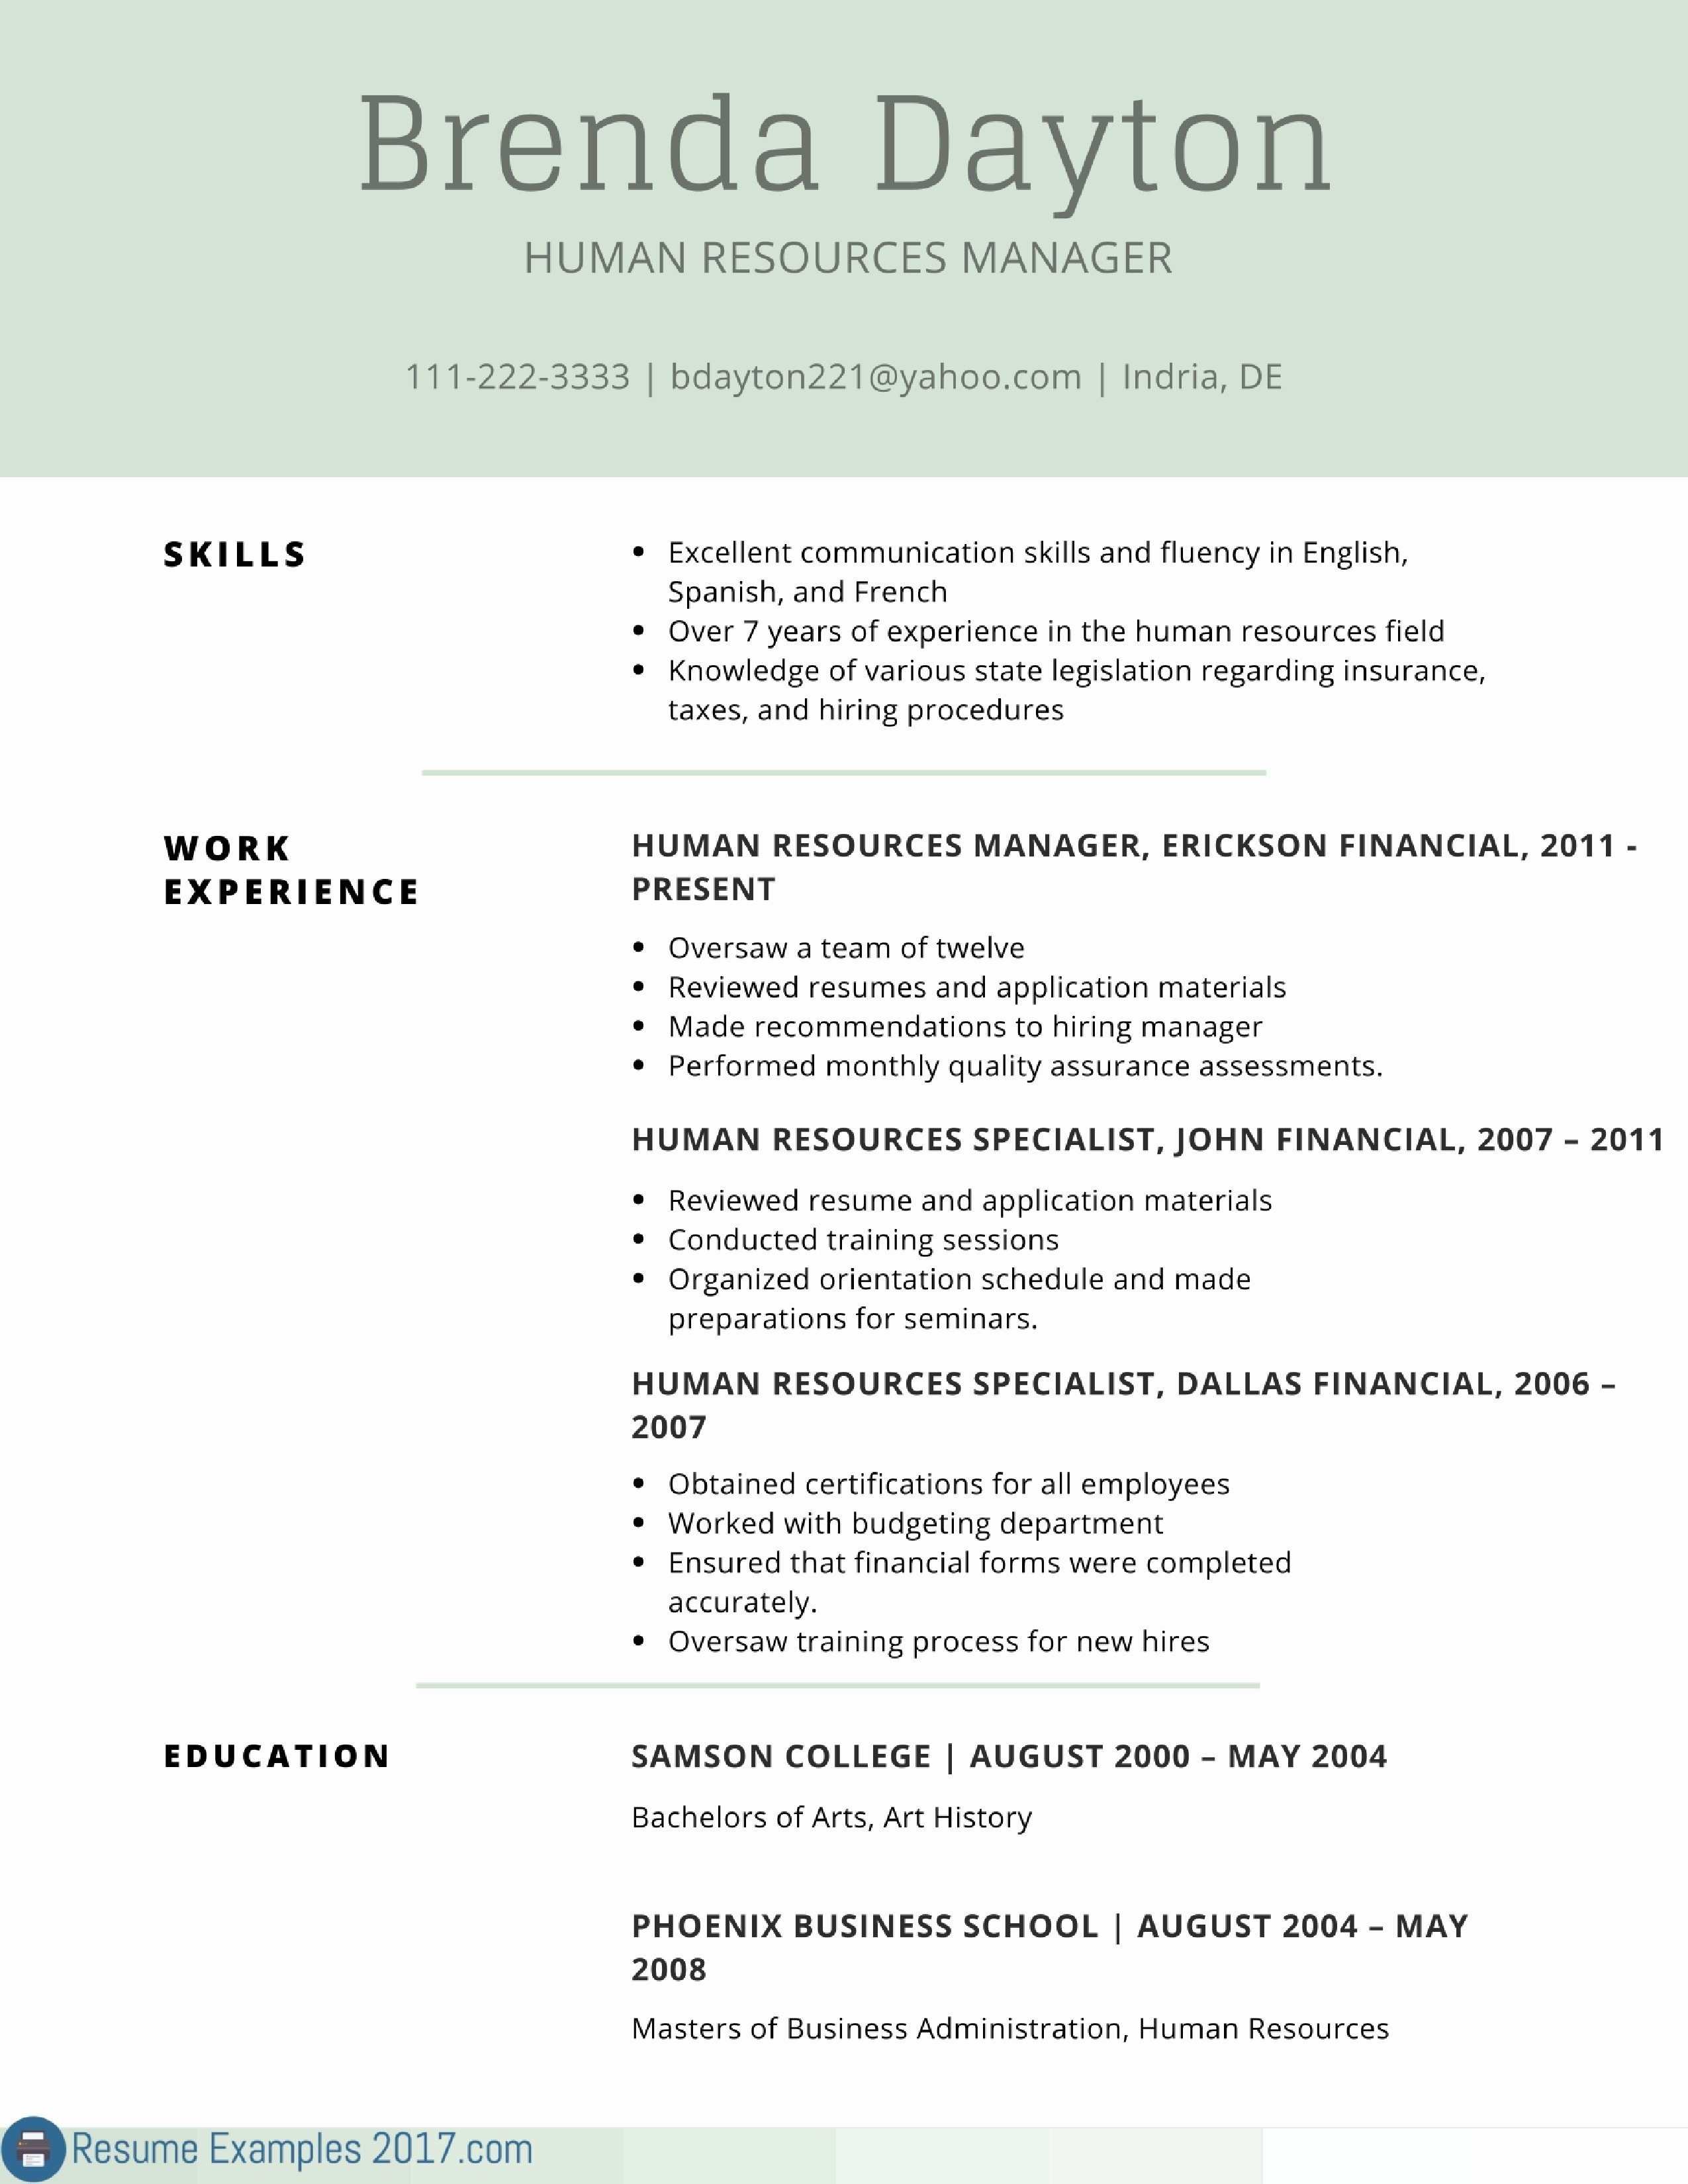 Best Human Resources Resume - Human Resource Resume Example Paragraphrewriter